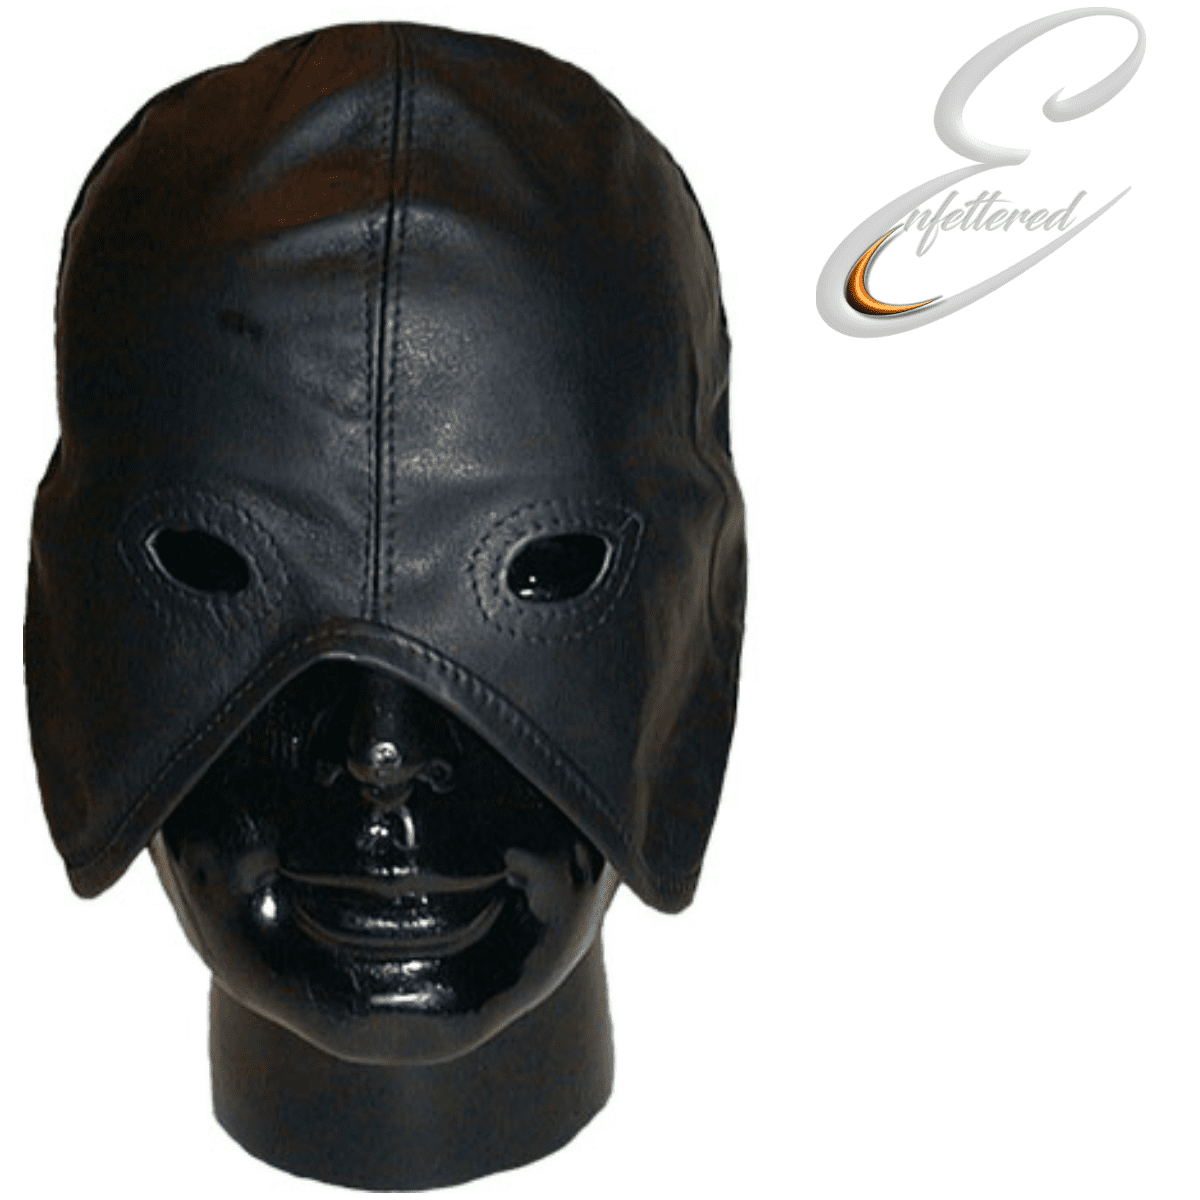 Enfettered Leather Masters Hood